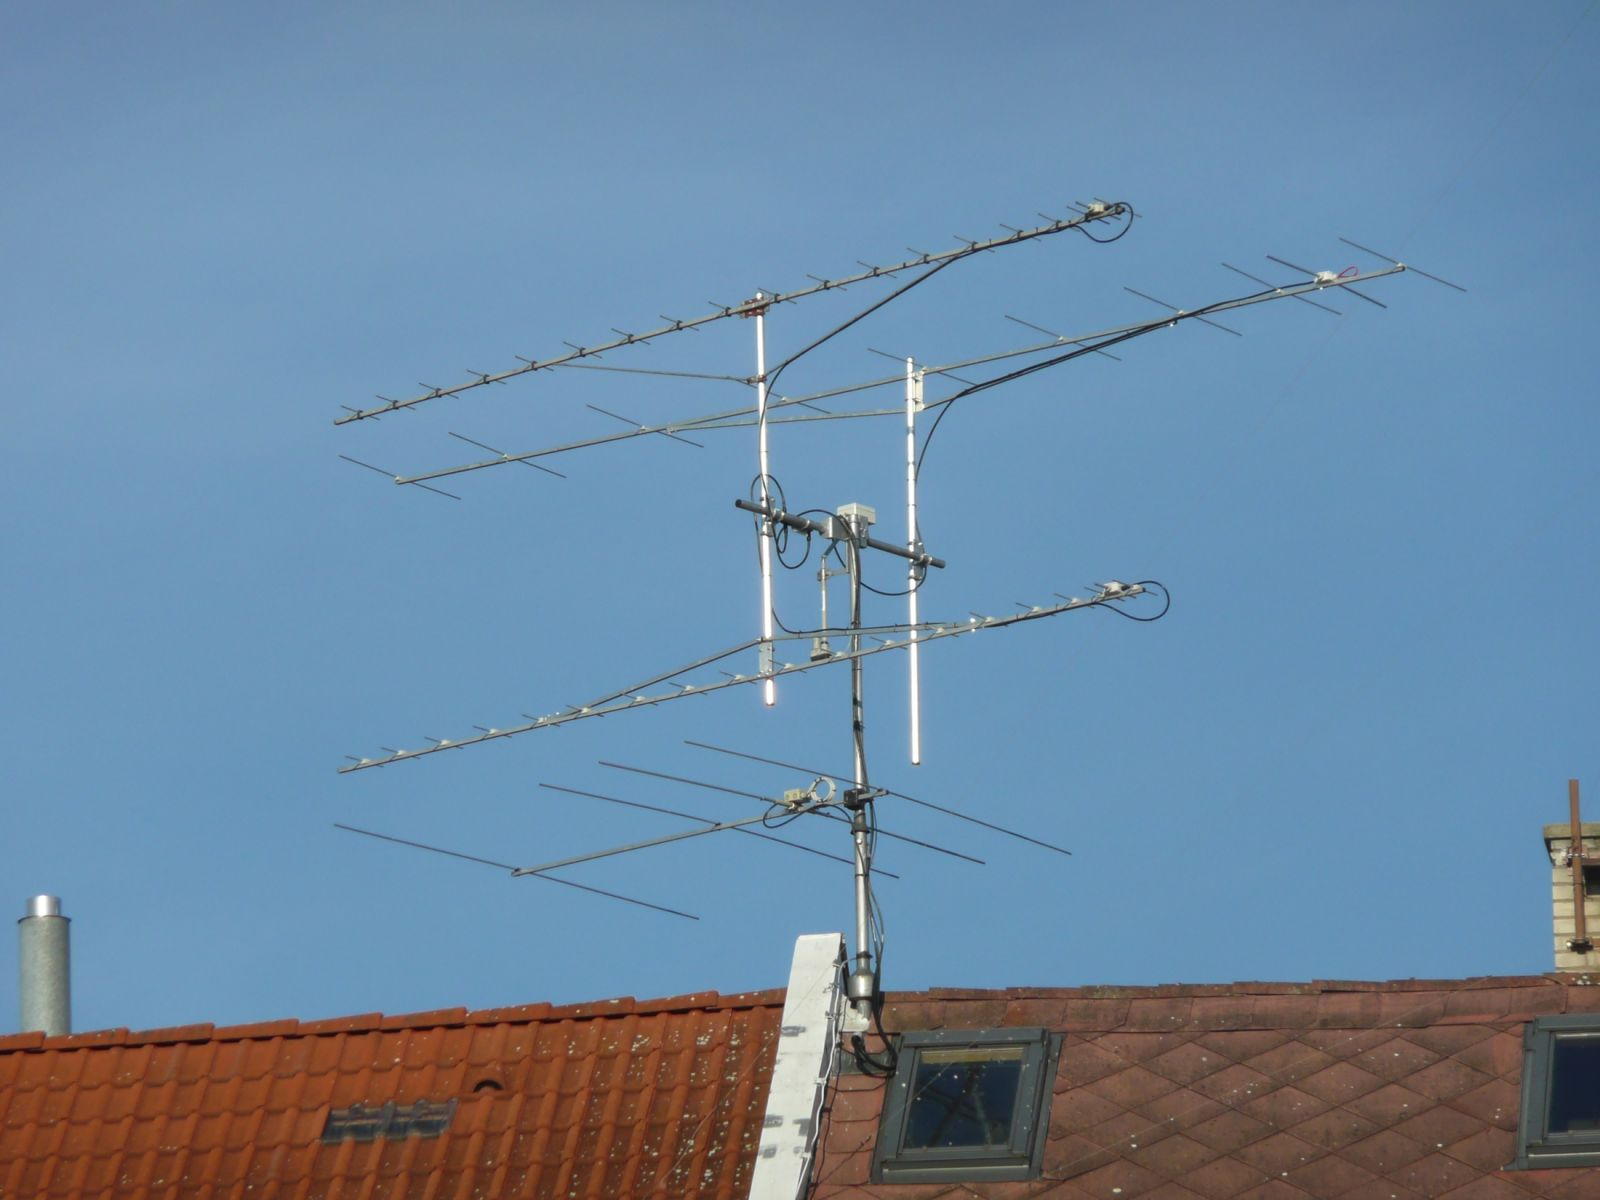 VHF ANT at home QTH